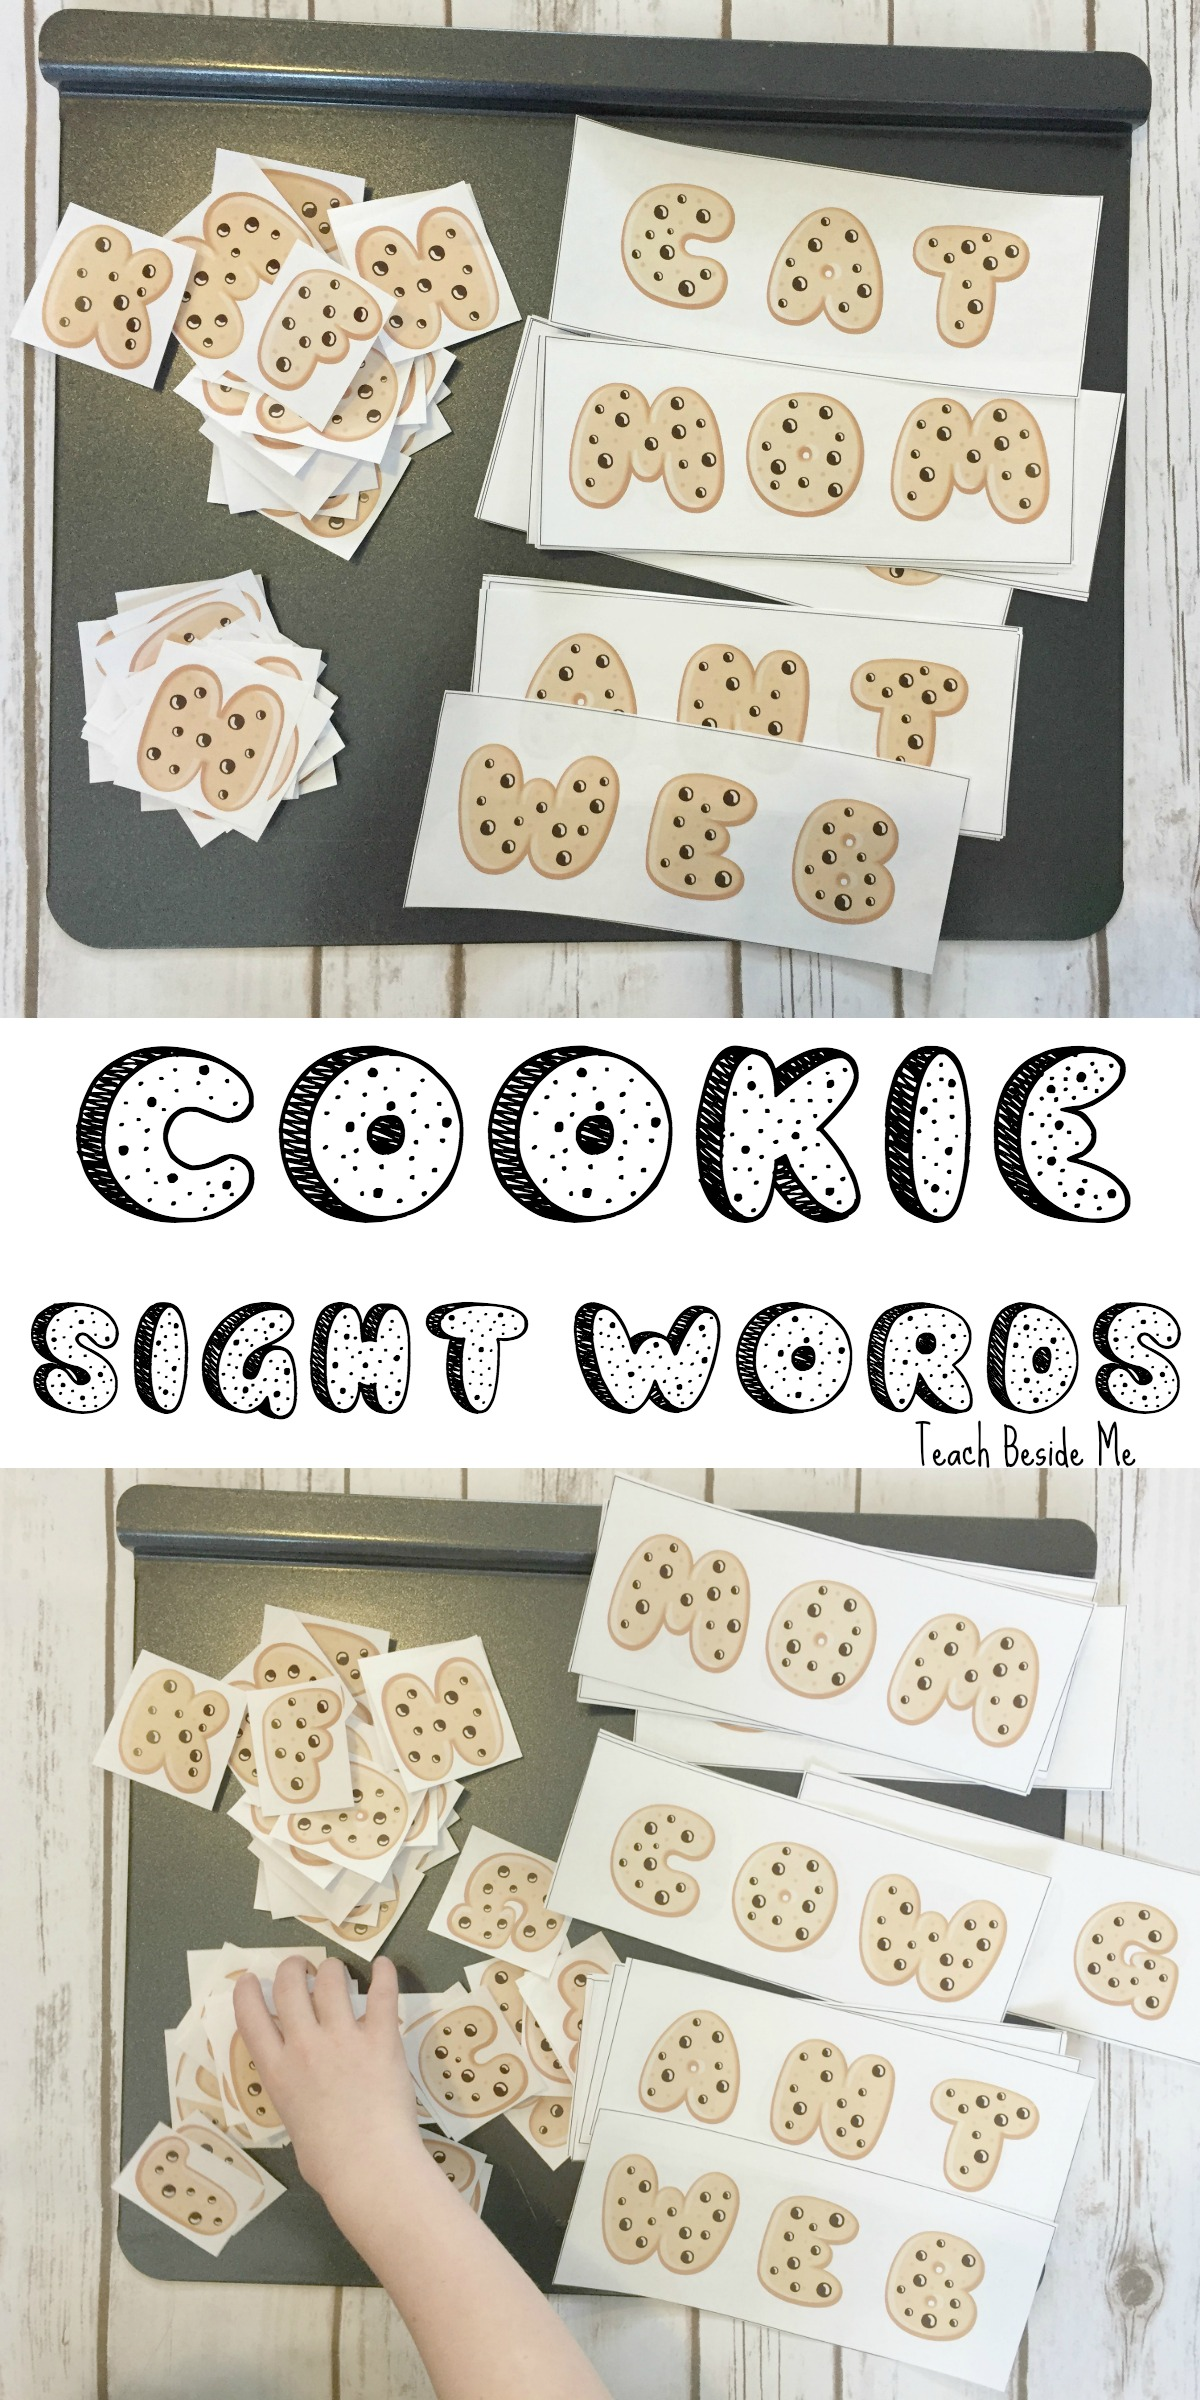 Sight Word Spelling with Cookies